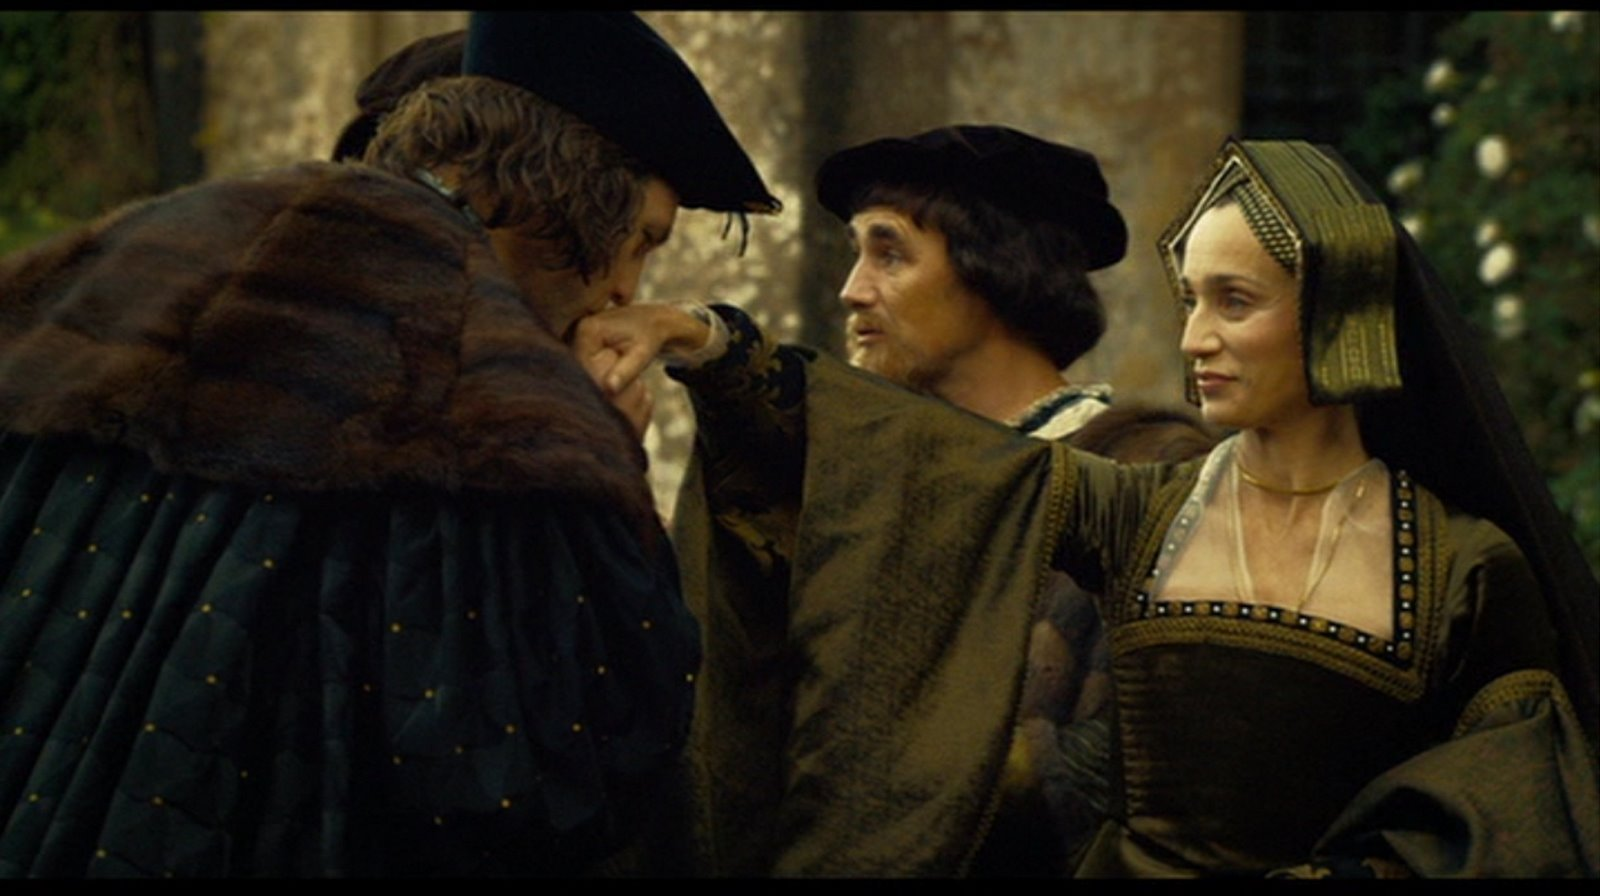 The Other Boleyn Girl Hd Wallpaper Kristin Scott Thomas Images The Other Boleyn Girl Hd